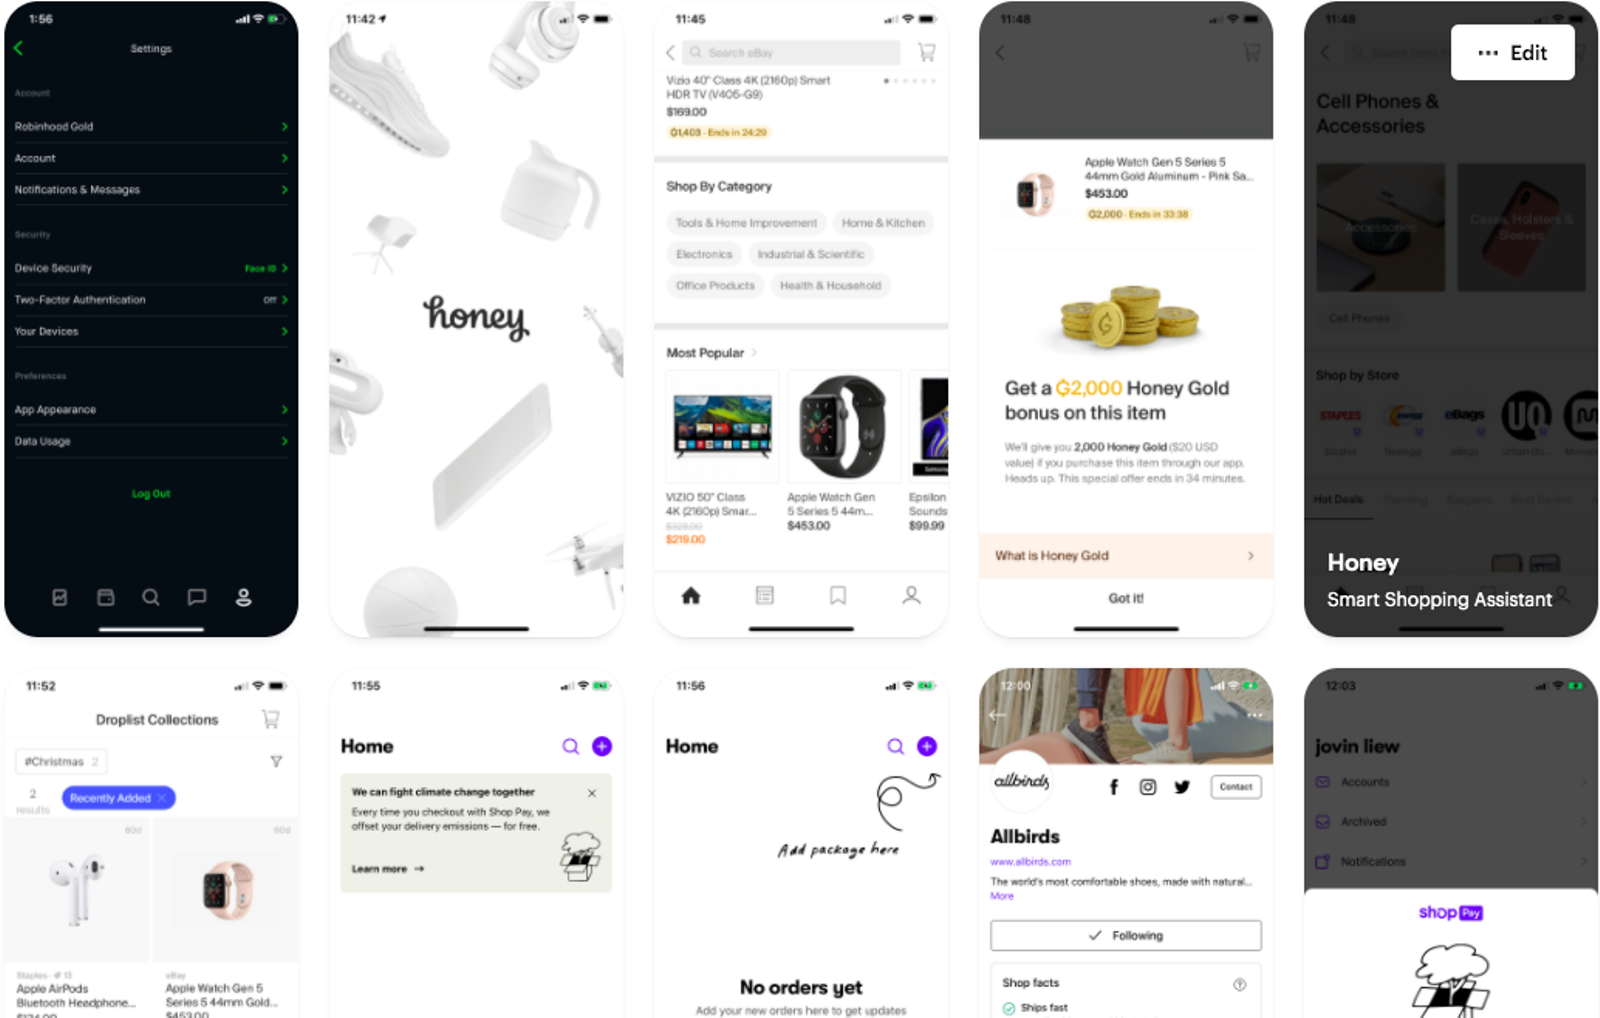 Stylit UI UX for Mobile Shopping App Moodboard using Mobbin